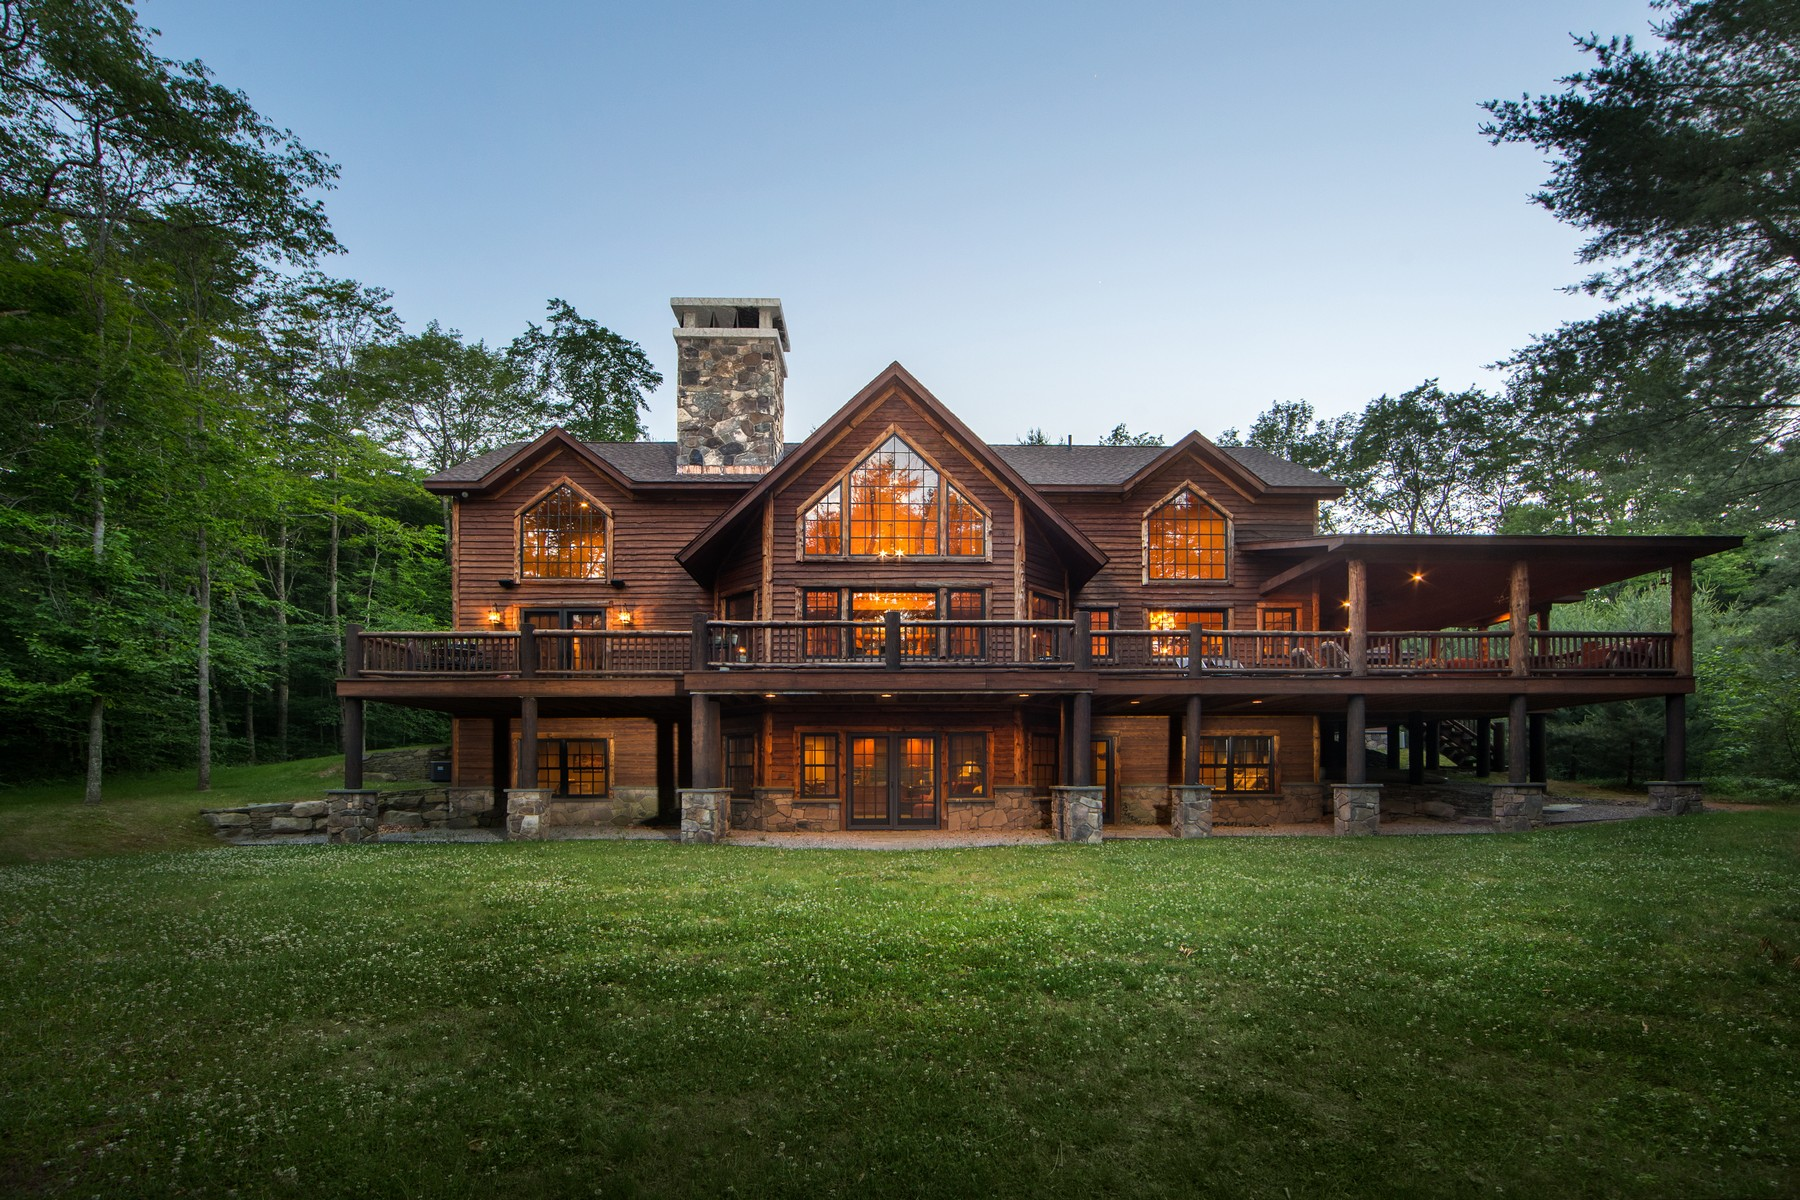 Single Family Home for Sale at The Forest Edge Lodge at The Chapin Estate 427 Woodstone Trail Bethel, New York 12720 United States